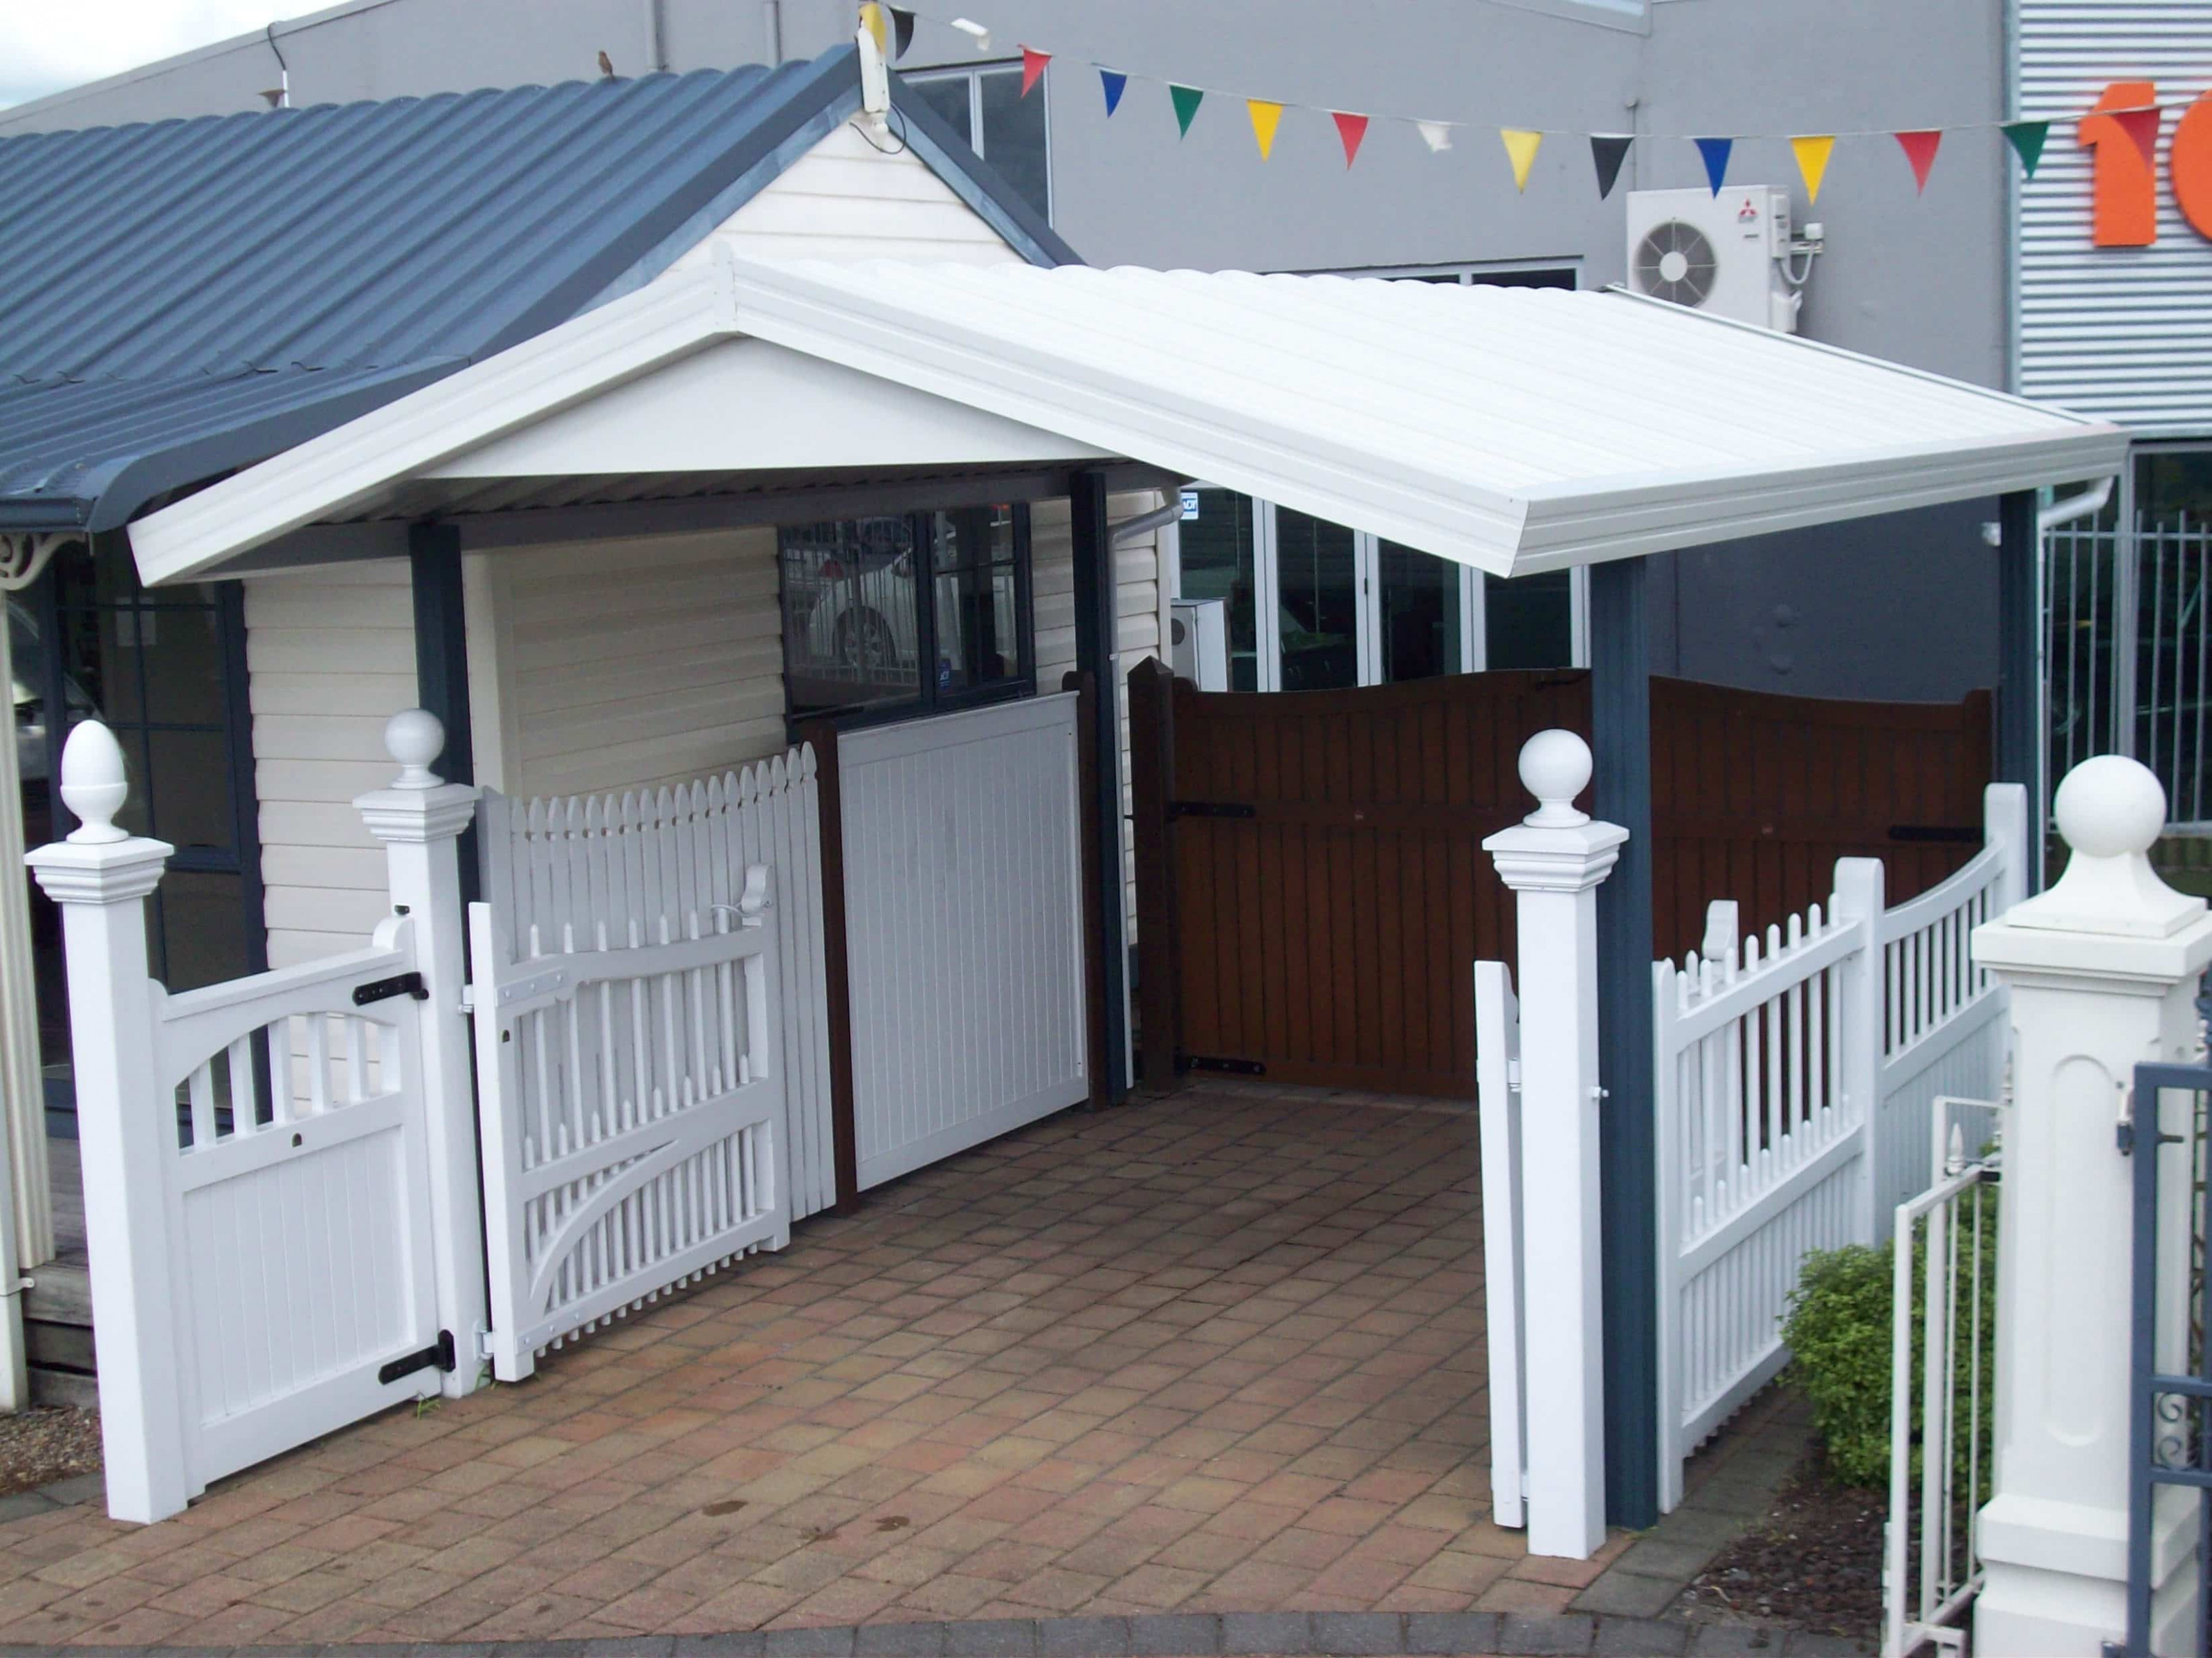 Formsteel Carports Sheds And Shelters Carports For Roof